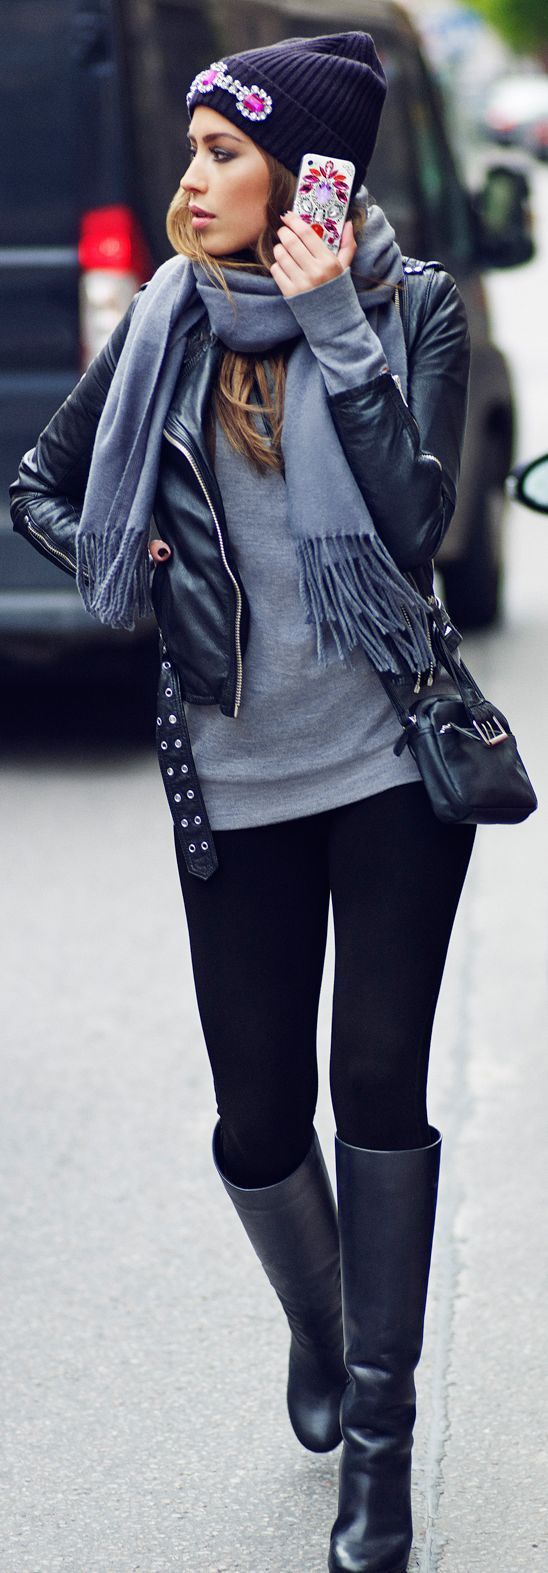 A black leather moto jacket and black leggings are a great outfit formula to have in your arsenal. Polish off the ensemble with black leather knee high boots.  Shop this look for $93:  http://lookastic.com/women/looks/beanie-scarf-long-sleeve-t-shirt-crossbody-bag-leggings-knee-high-boots-biker-jacket/7616  — Black Embellished Beanie  — Grey Scarf  — Grey Long Sleeve T-shirt  — Black Leather Crossbody Bag  — Black Leggings  — Black Leather Knee High Boots  — Black Leather Biker Jacket